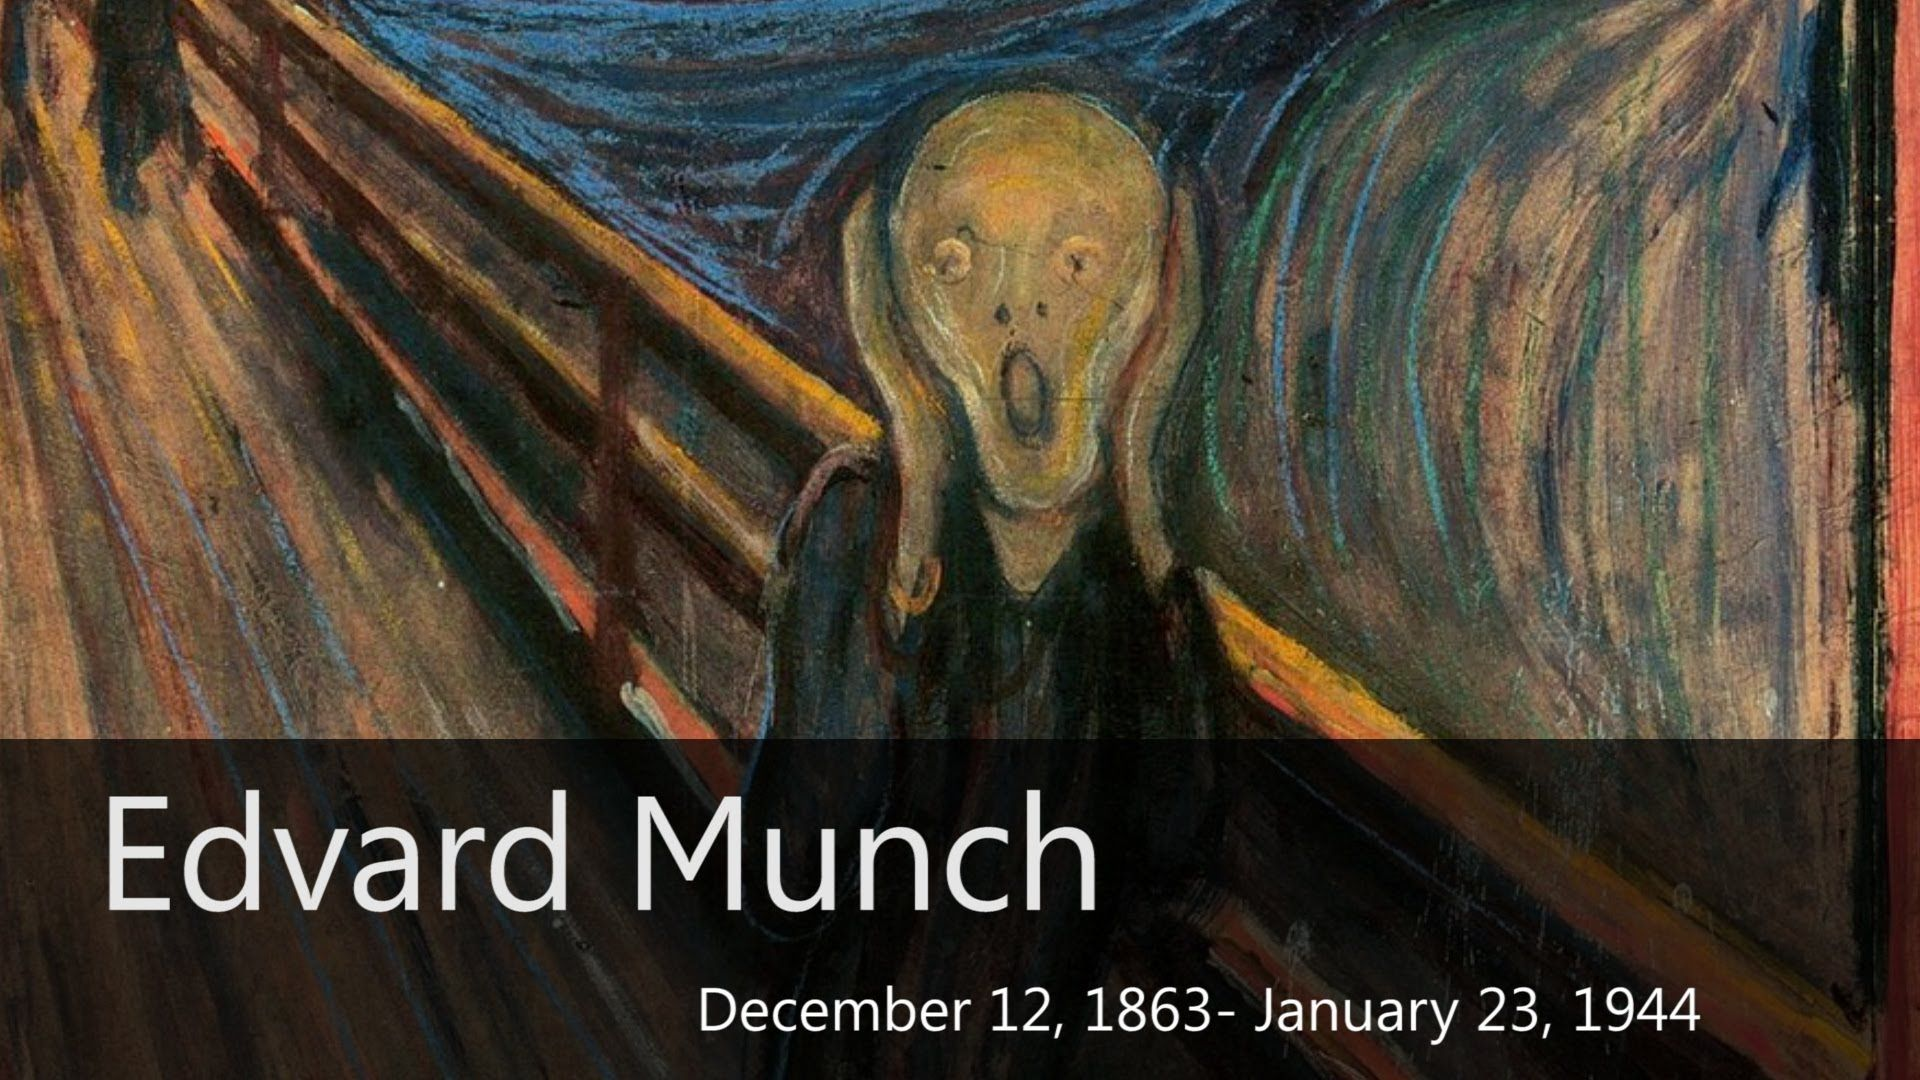 Munch Cuadros Edvard Munch Biography Goodbye Art Academy 4th 5th Grade Art